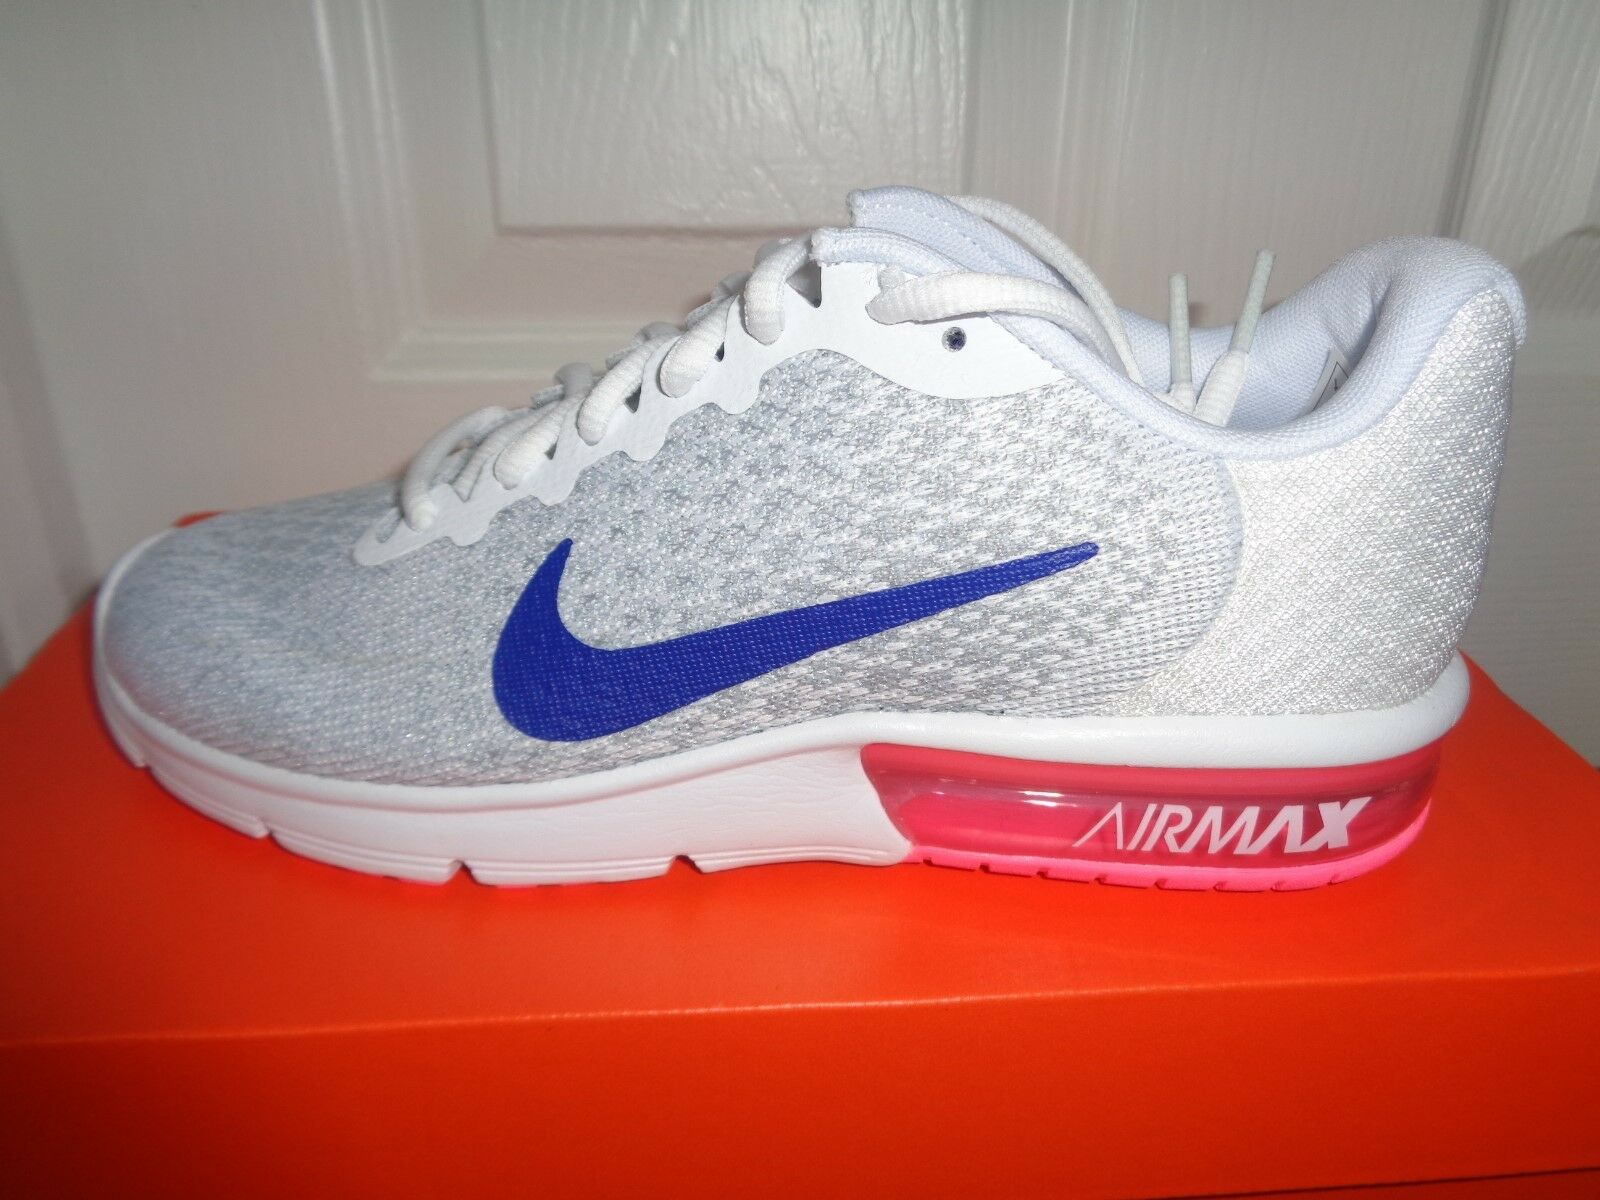 Nike Air Max Sequent 2 2 2 wmns trainers  chaussures  852465 146 uk 4.5 eu 38 us 7 NEW+BOX c34bc7